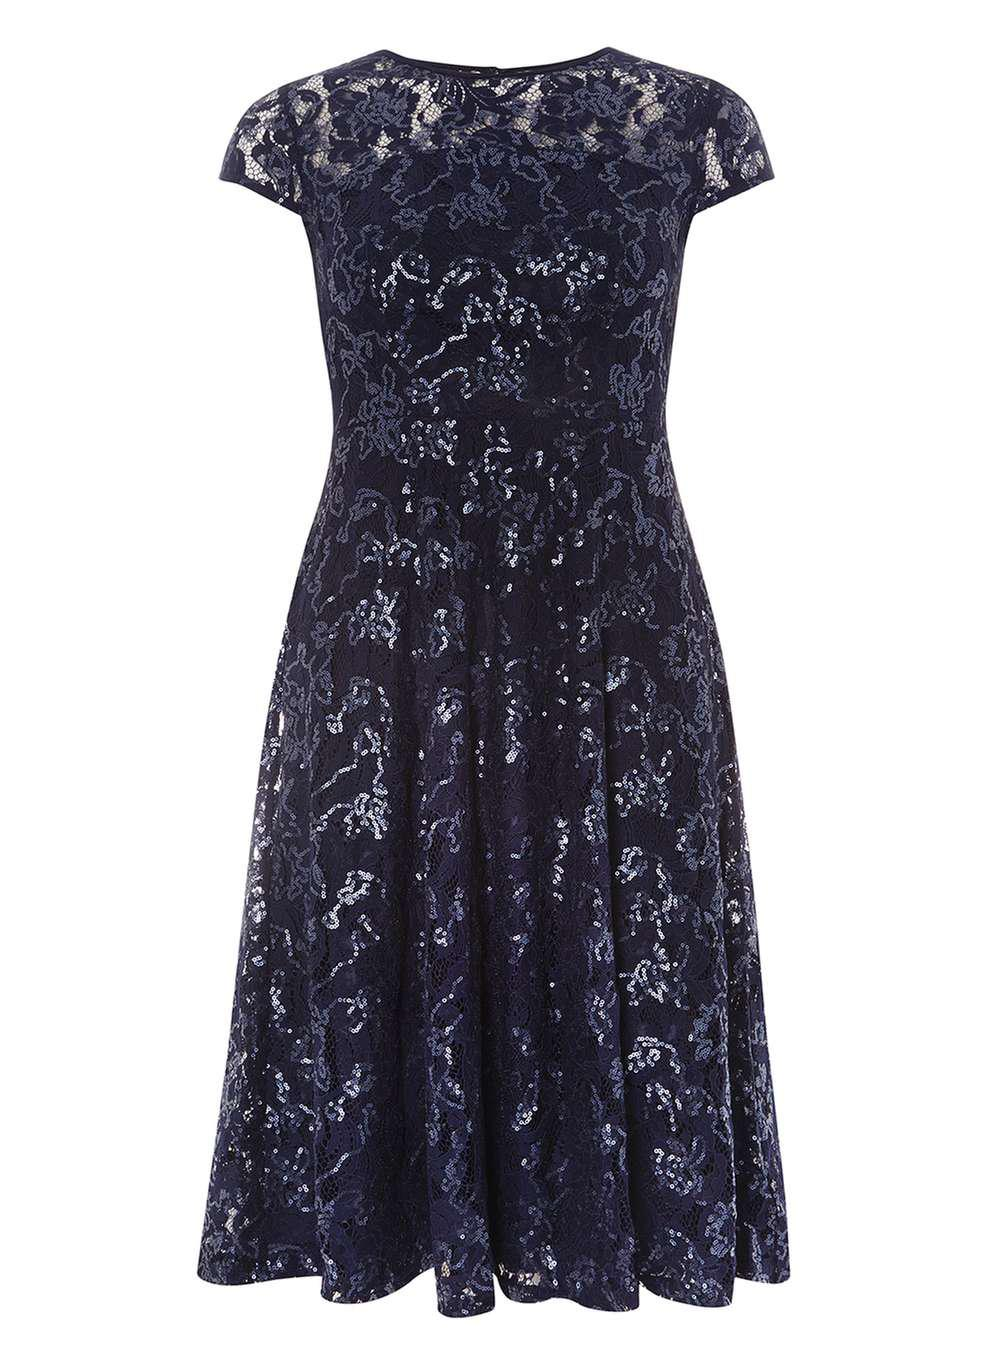 Up to 50% Off Dresses, Jeans, Skirts and More in the End of Season Sale at Dorothy Perkins Whether it's for daytime or a big night out, have a browse in the Dorothy Perkins sale to discover fabulous clothing with up to 50% off. 63 used today.